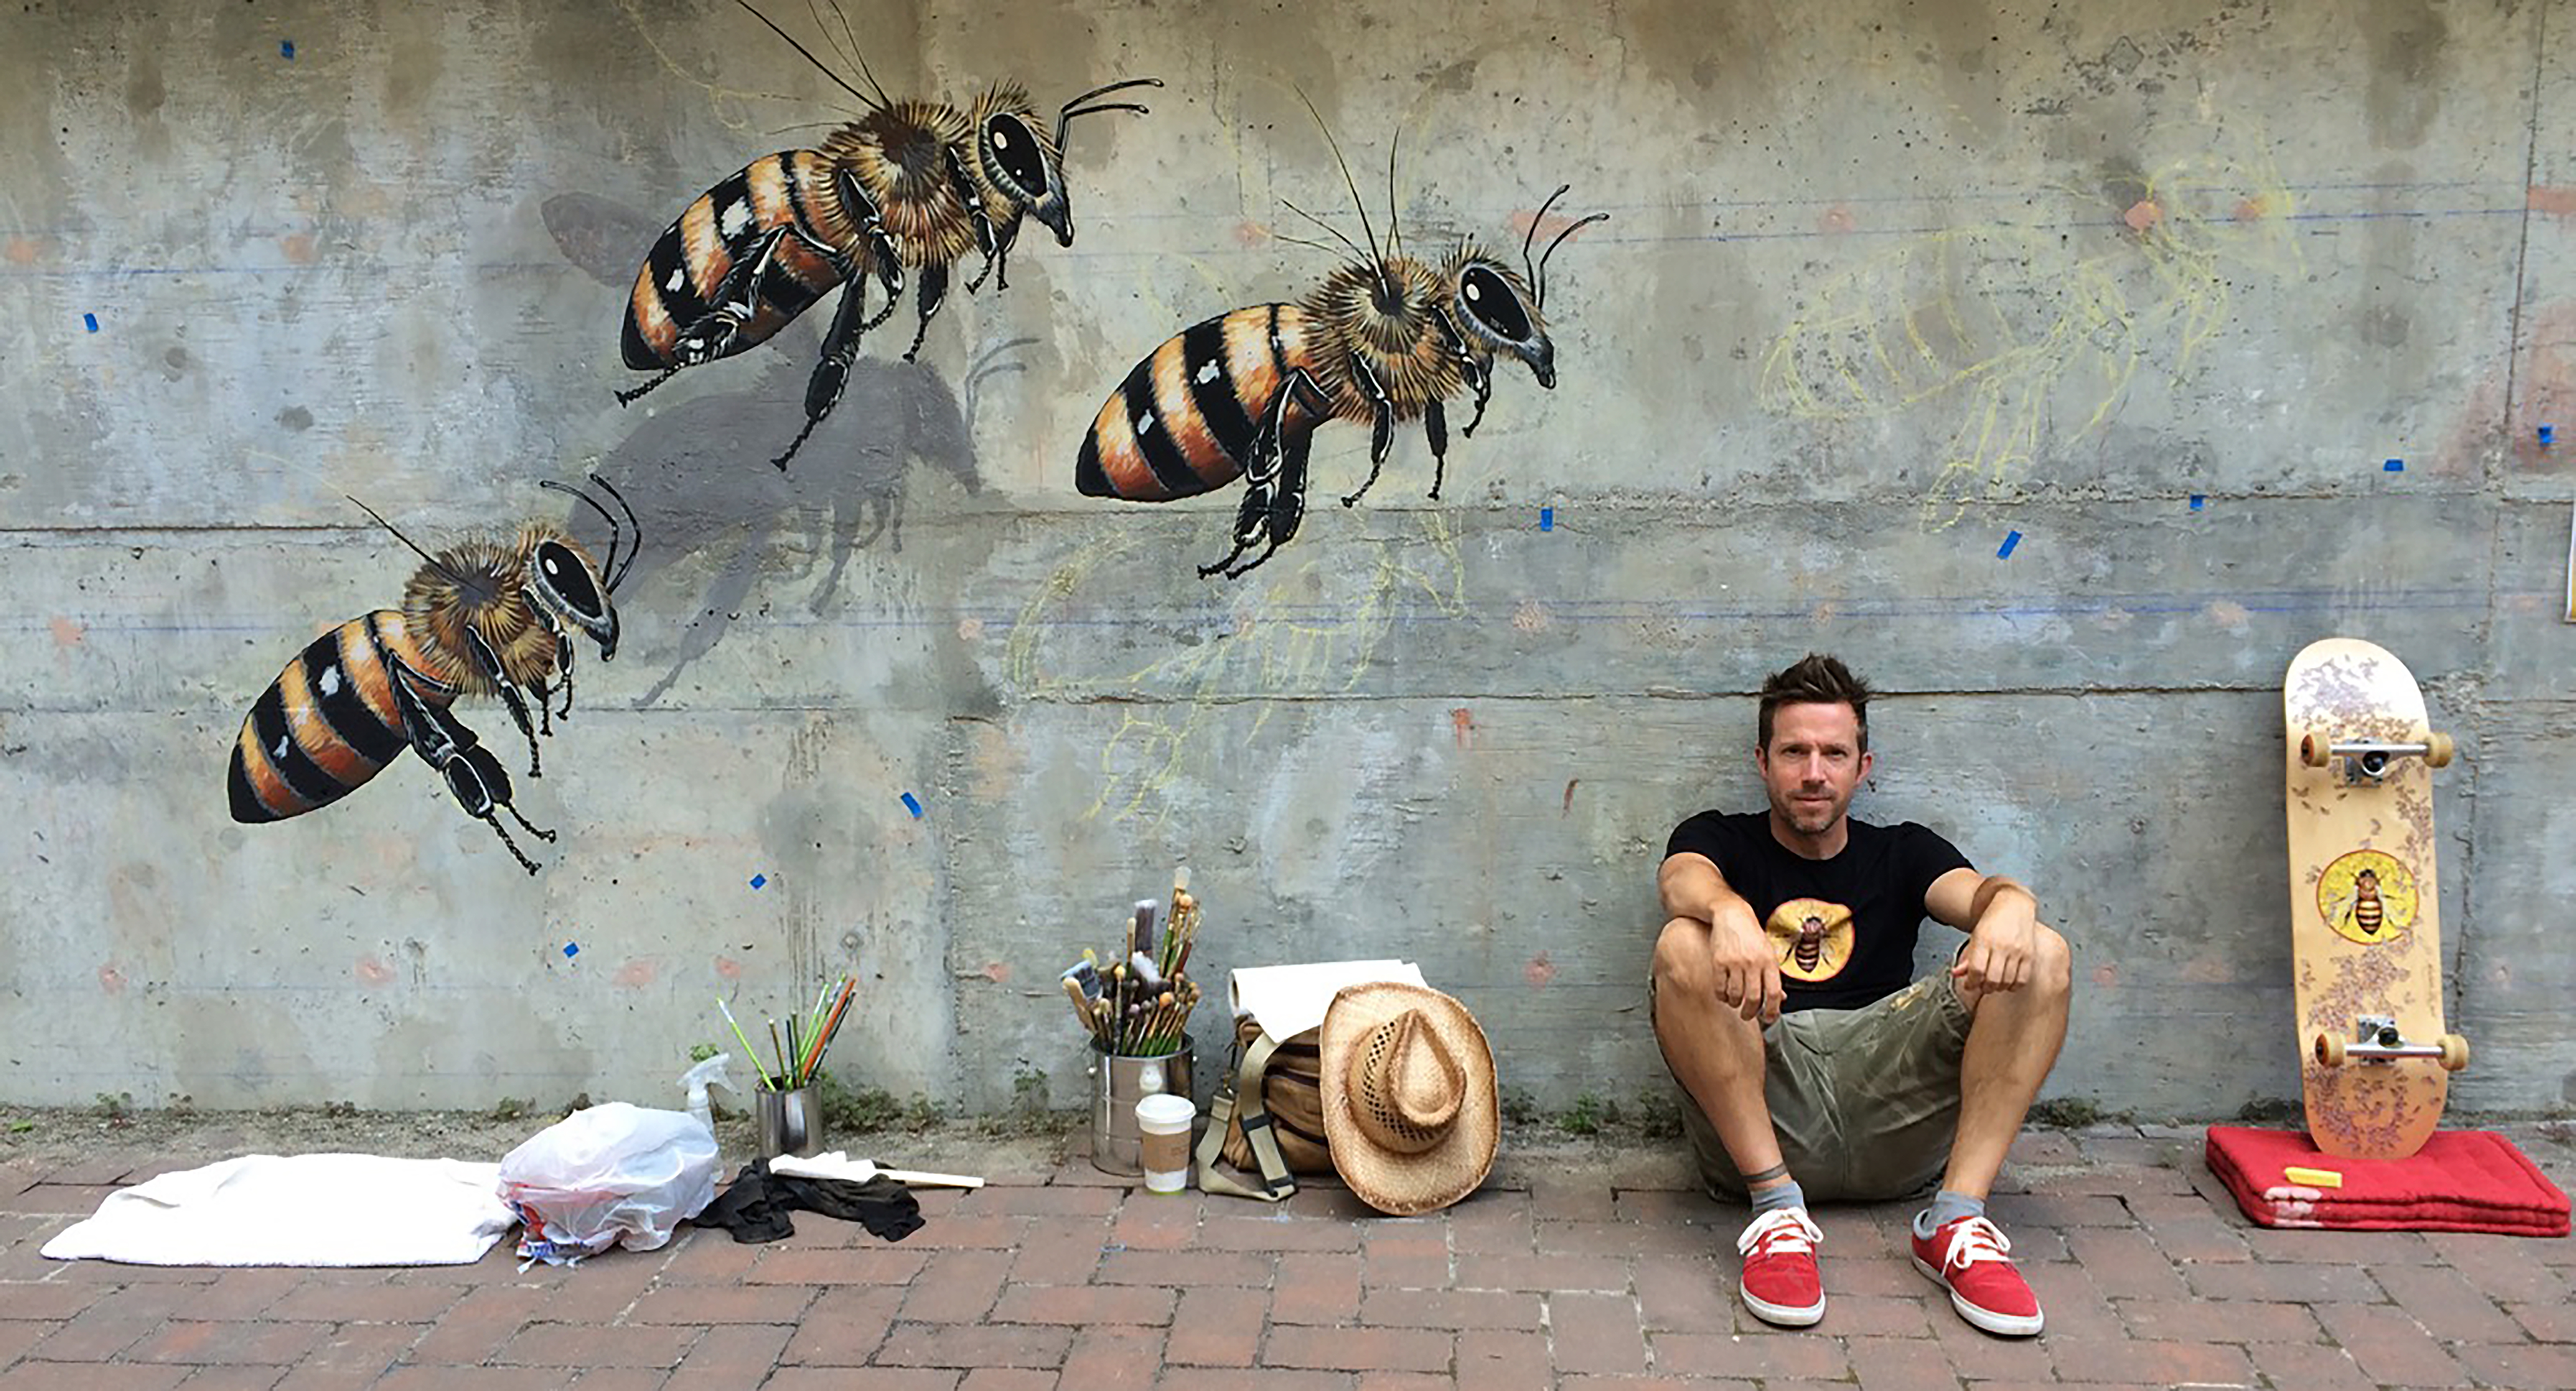 Caption: Matthew Willey and Bees, Credit: The Good of the Hive